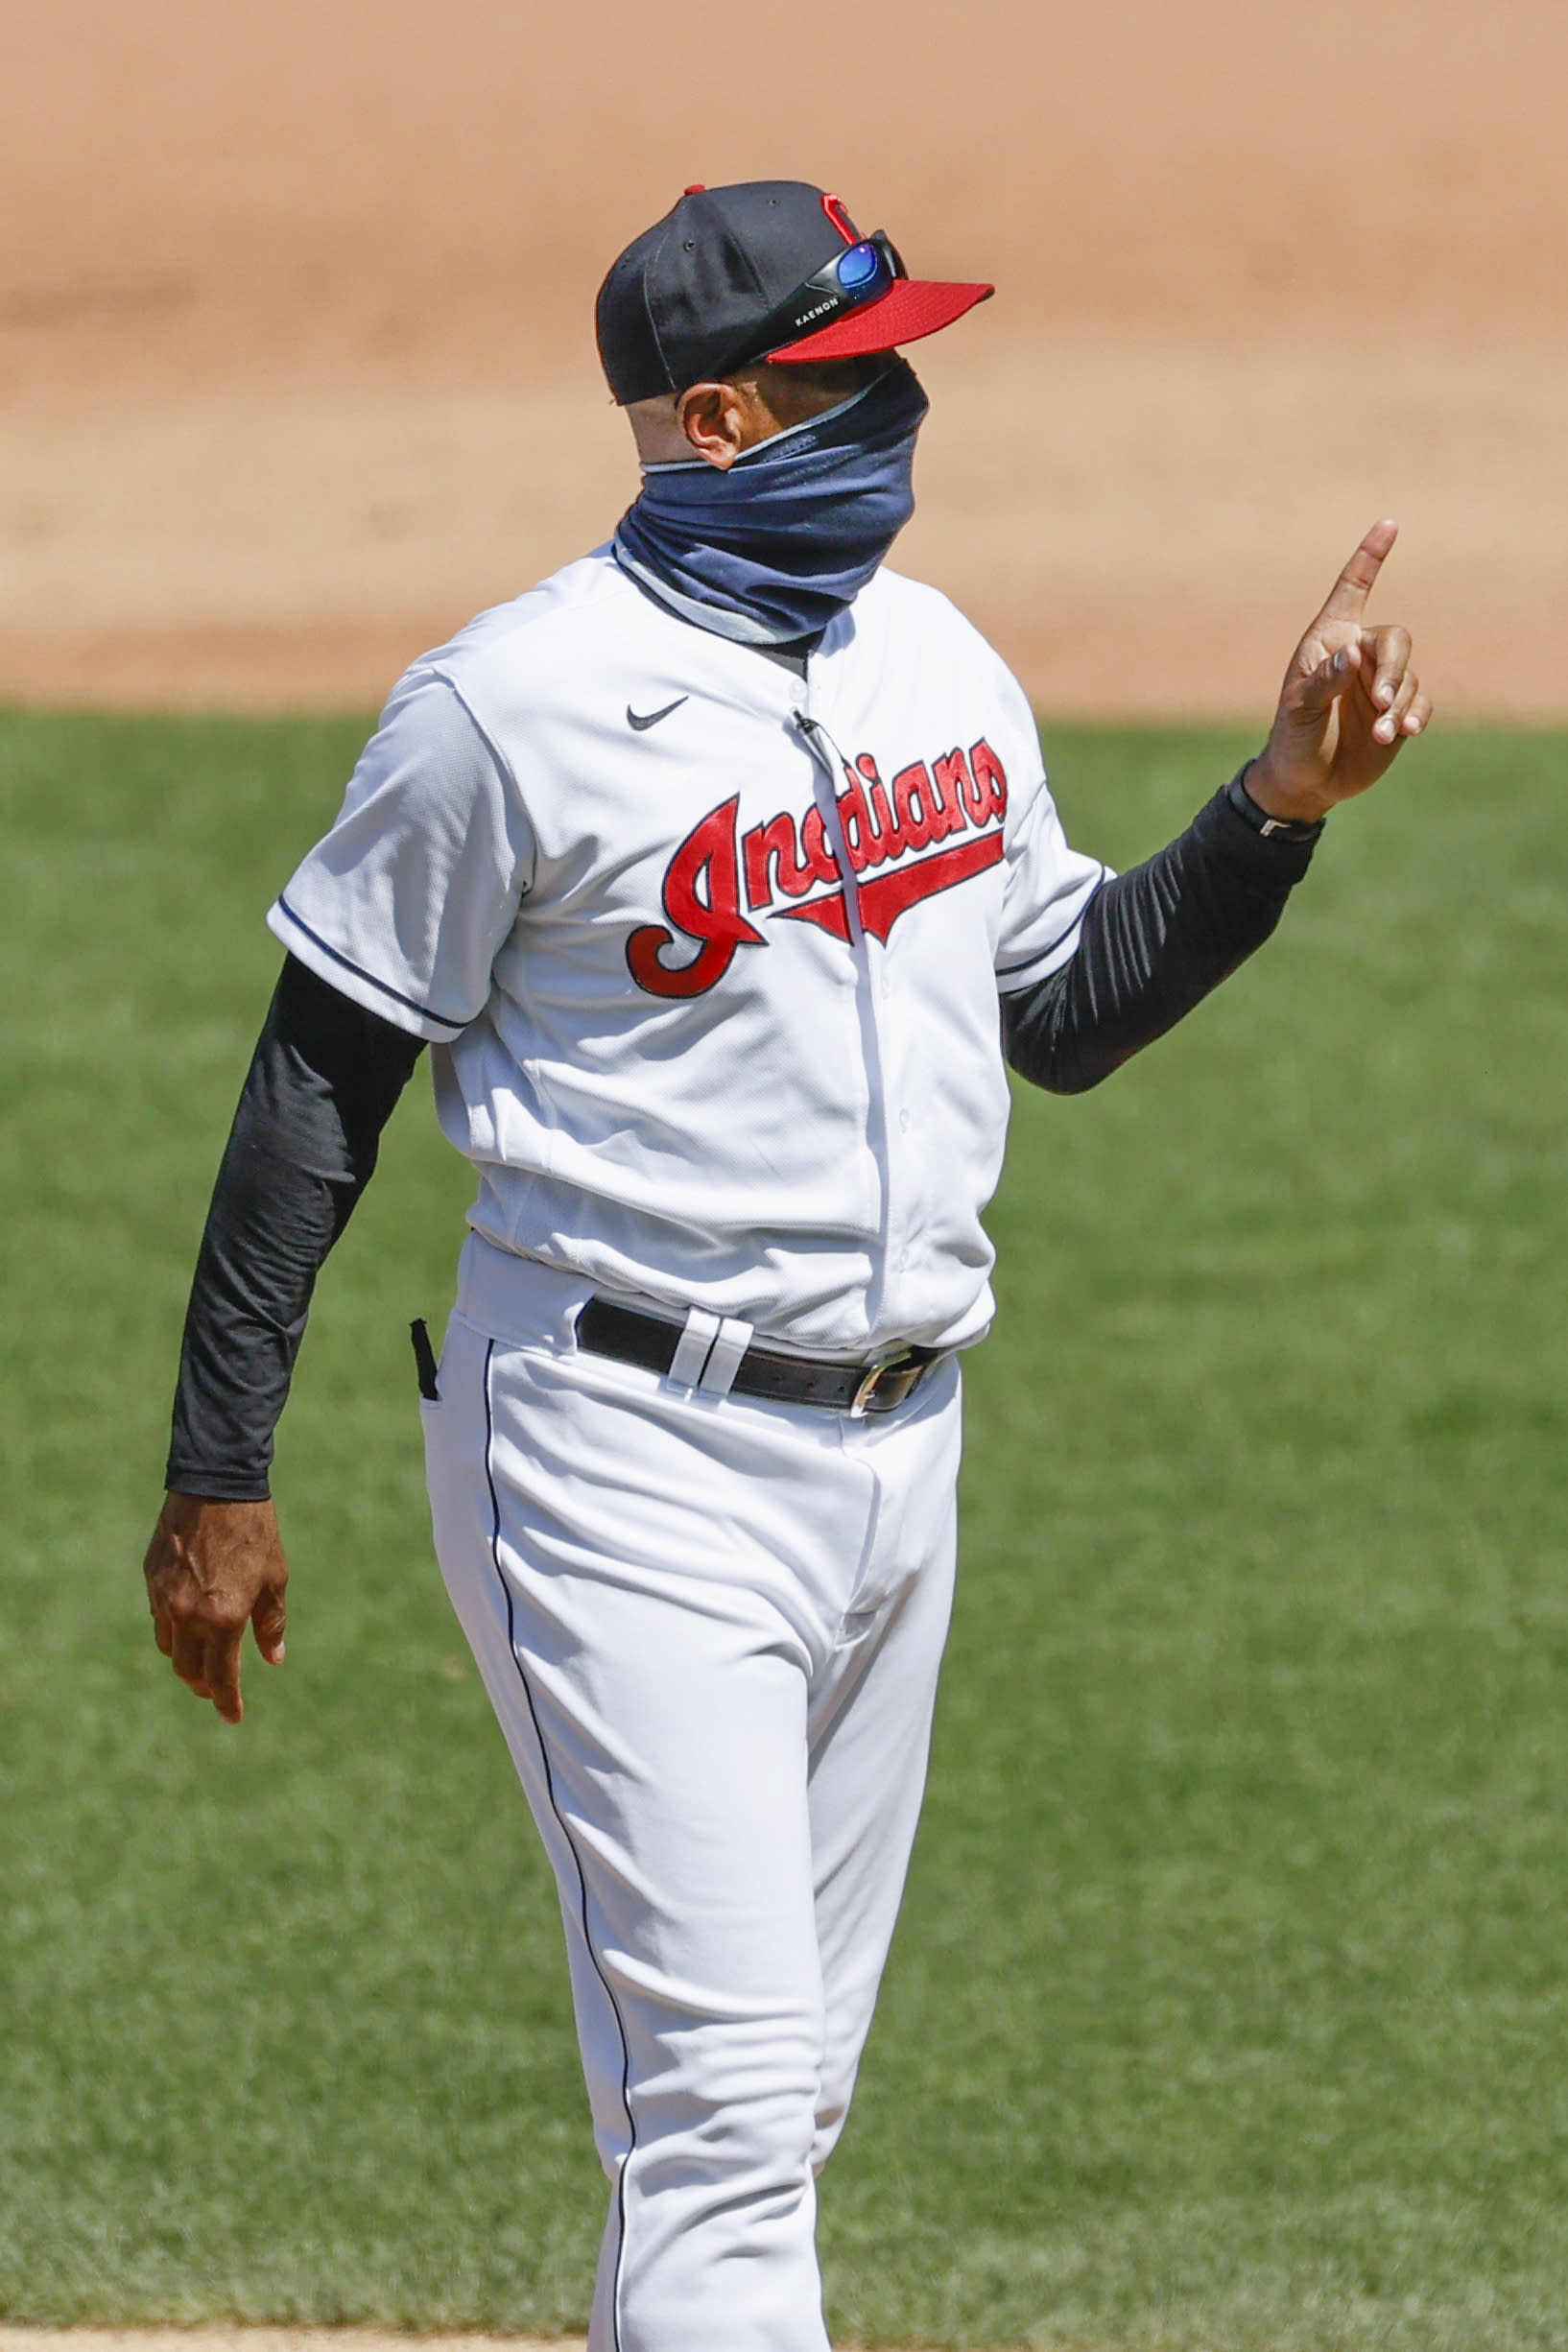 Cleveland Indians acting manager Sandy Alomar Jr. walks back to the dugout after making a pitching change against the Detroit Tigers during the fourth inning of a baseball game, Sunday, Aug. 23, 2020, in Cleveland. (AP Photo/Ron Schwane)